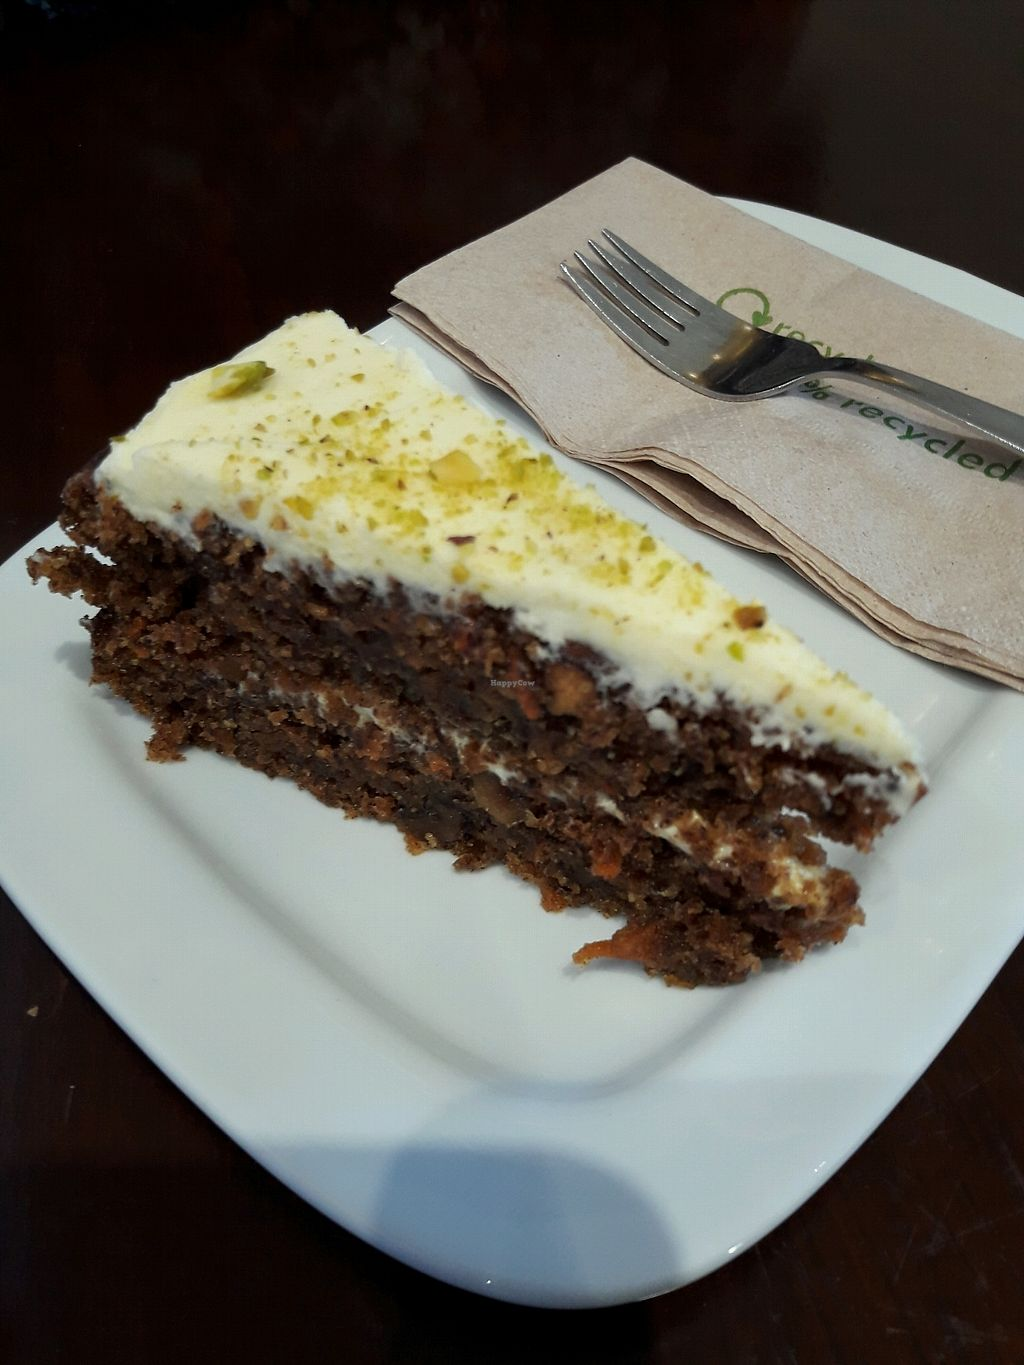 """Photo of The V & V Cafe  by <a href=""""/members/profile/Arta"""">Arta</a> <br/>some of the best carrot cake I've had  <br/> February 26, 2018  - <a href='/contact/abuse/image/87908/364150'>Report</a>"""